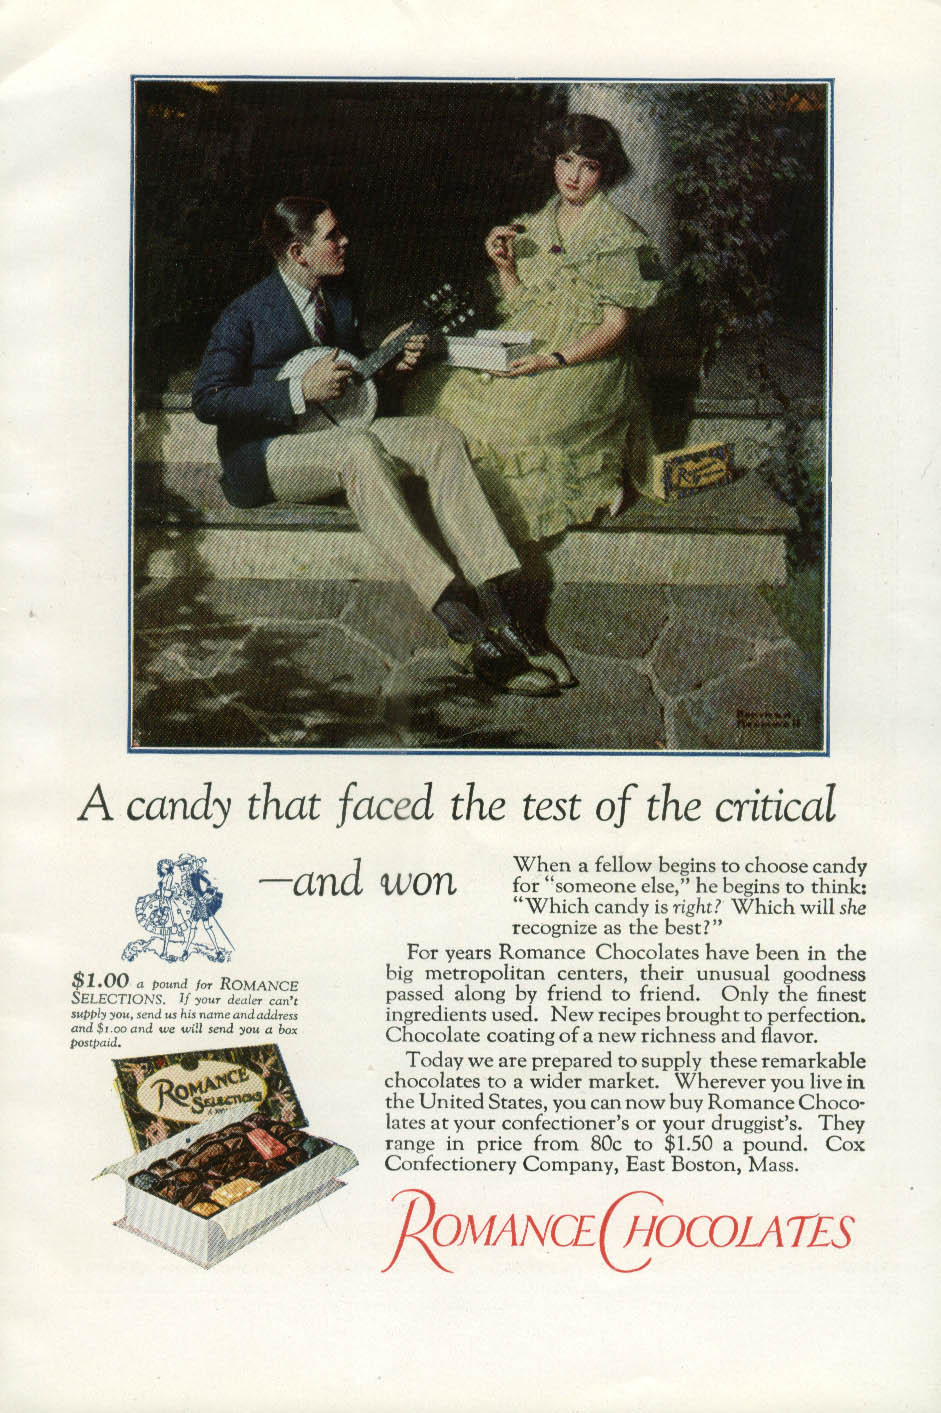 A candy that faced the test Romance Chocolates ad 1923 Norman Rockwell